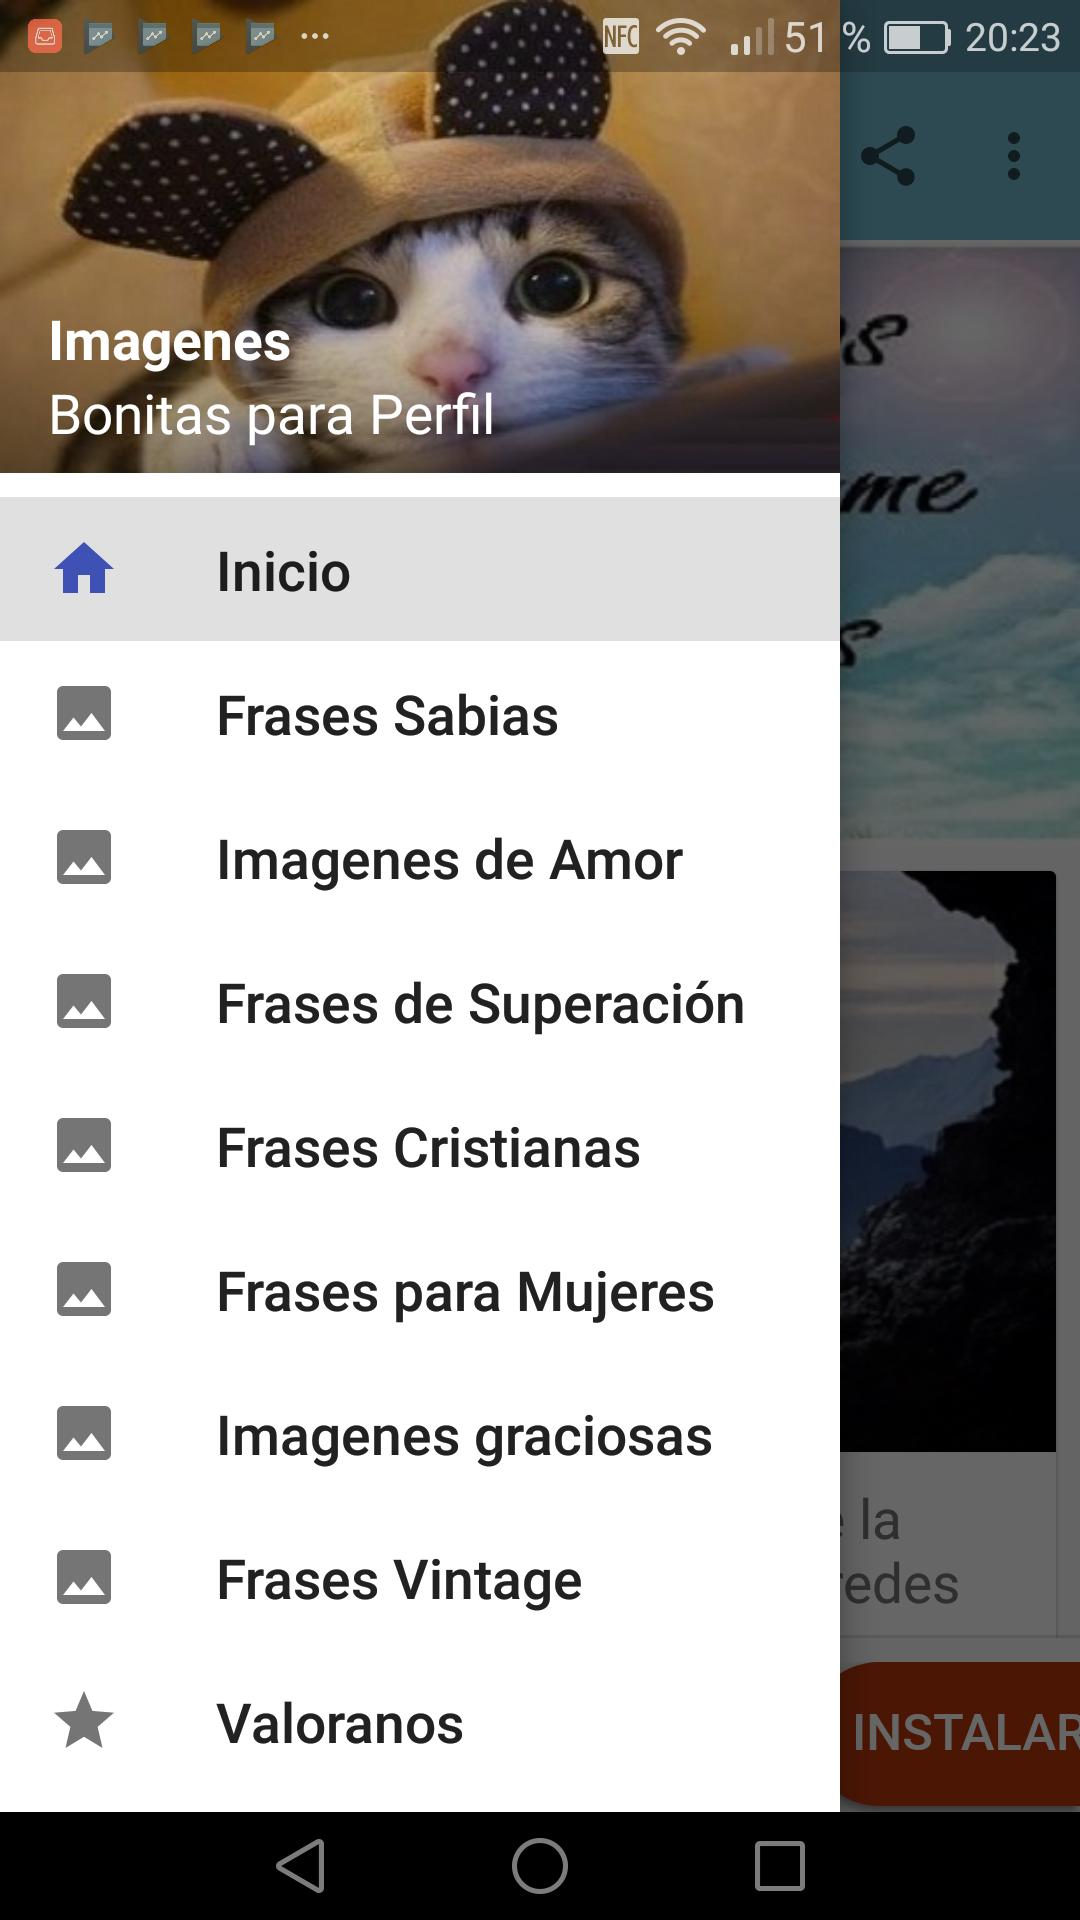 Frases E Imagenes Bonitas Para Perfil For Android Apk Download